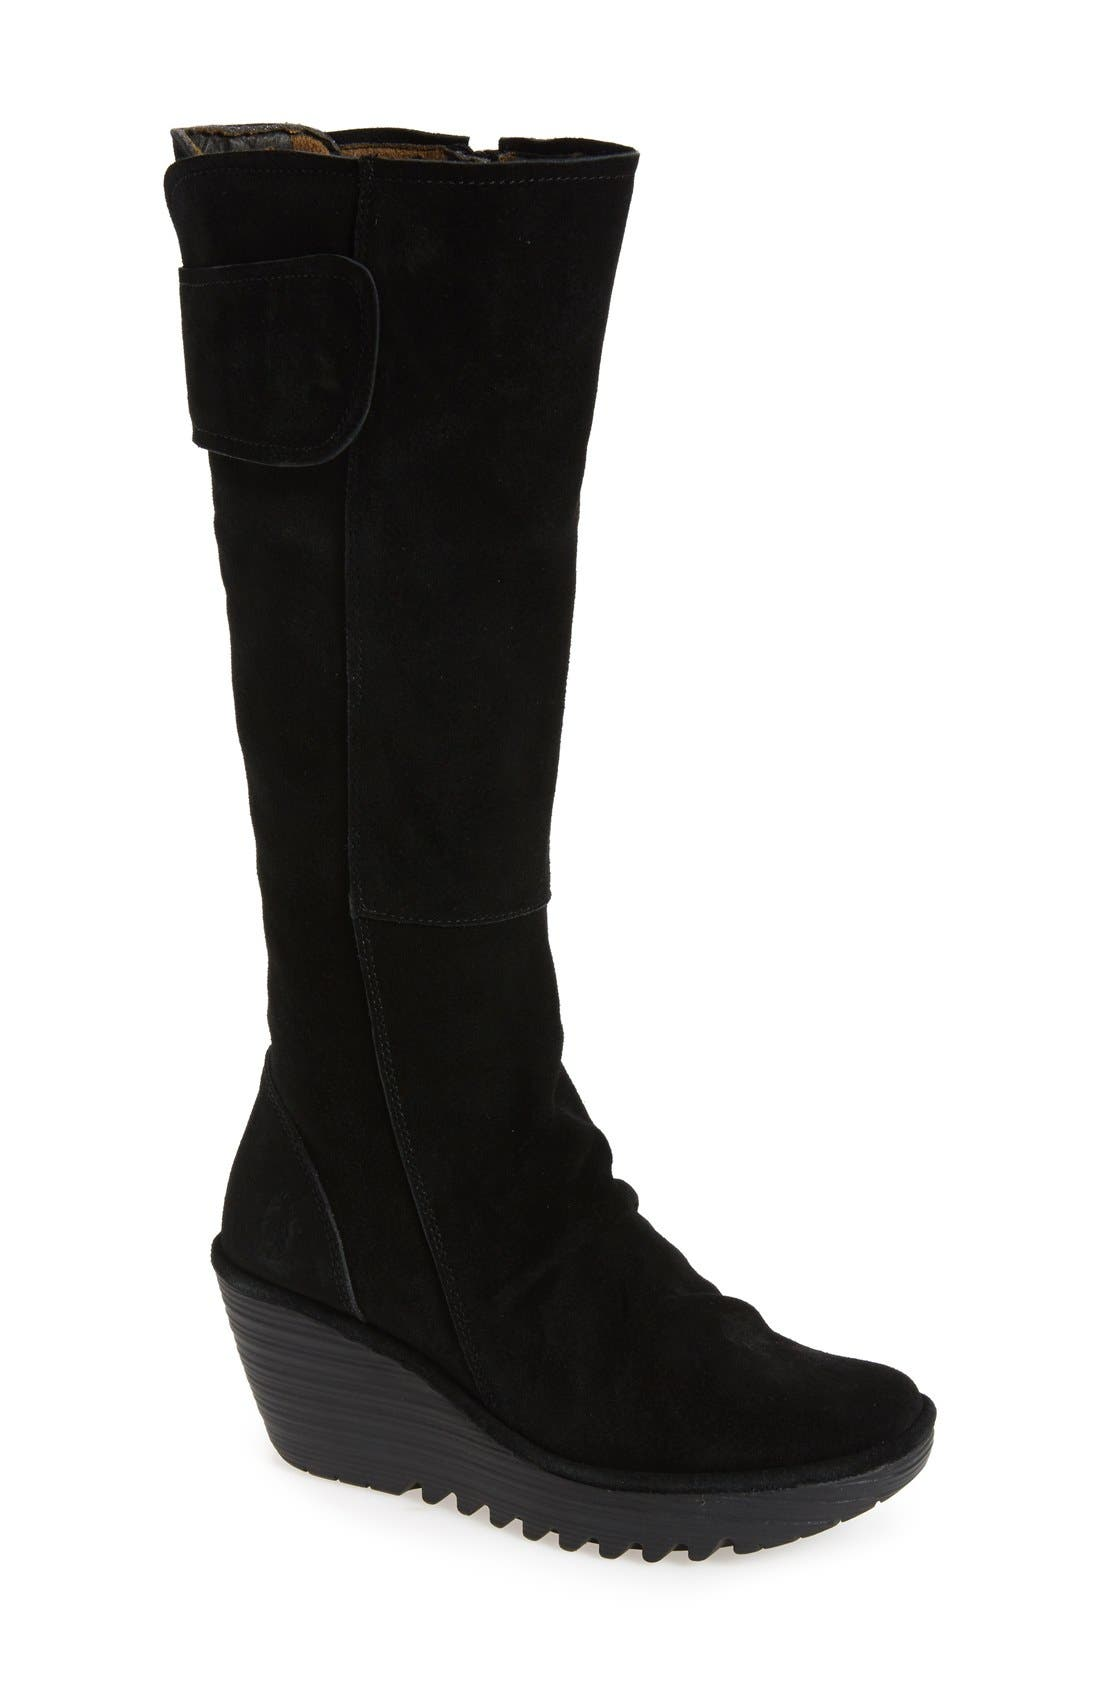 'Yulo' Knee High Wedge Platform Boot, Main, color, 003